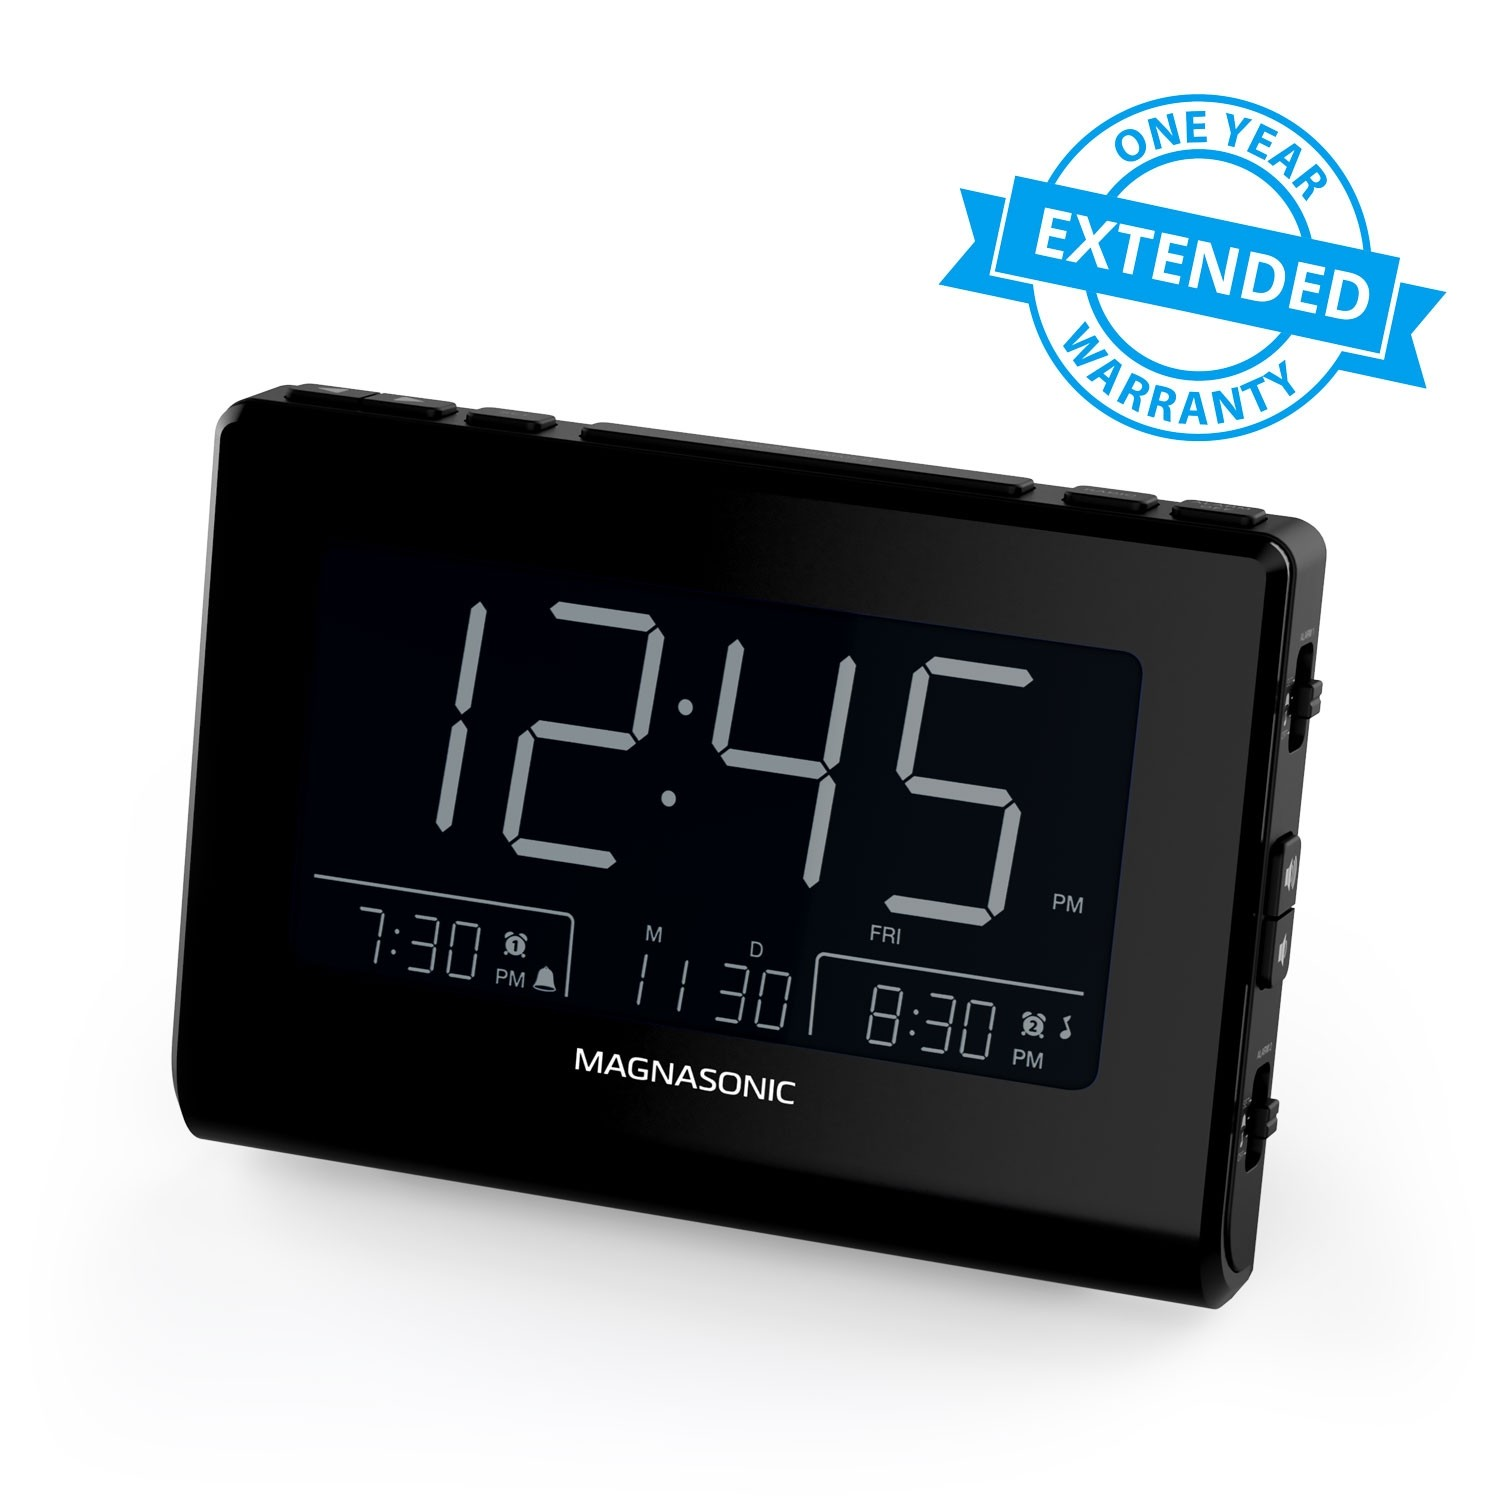 1 Year Warranty for the Alarm Clock Radio With USB Charging